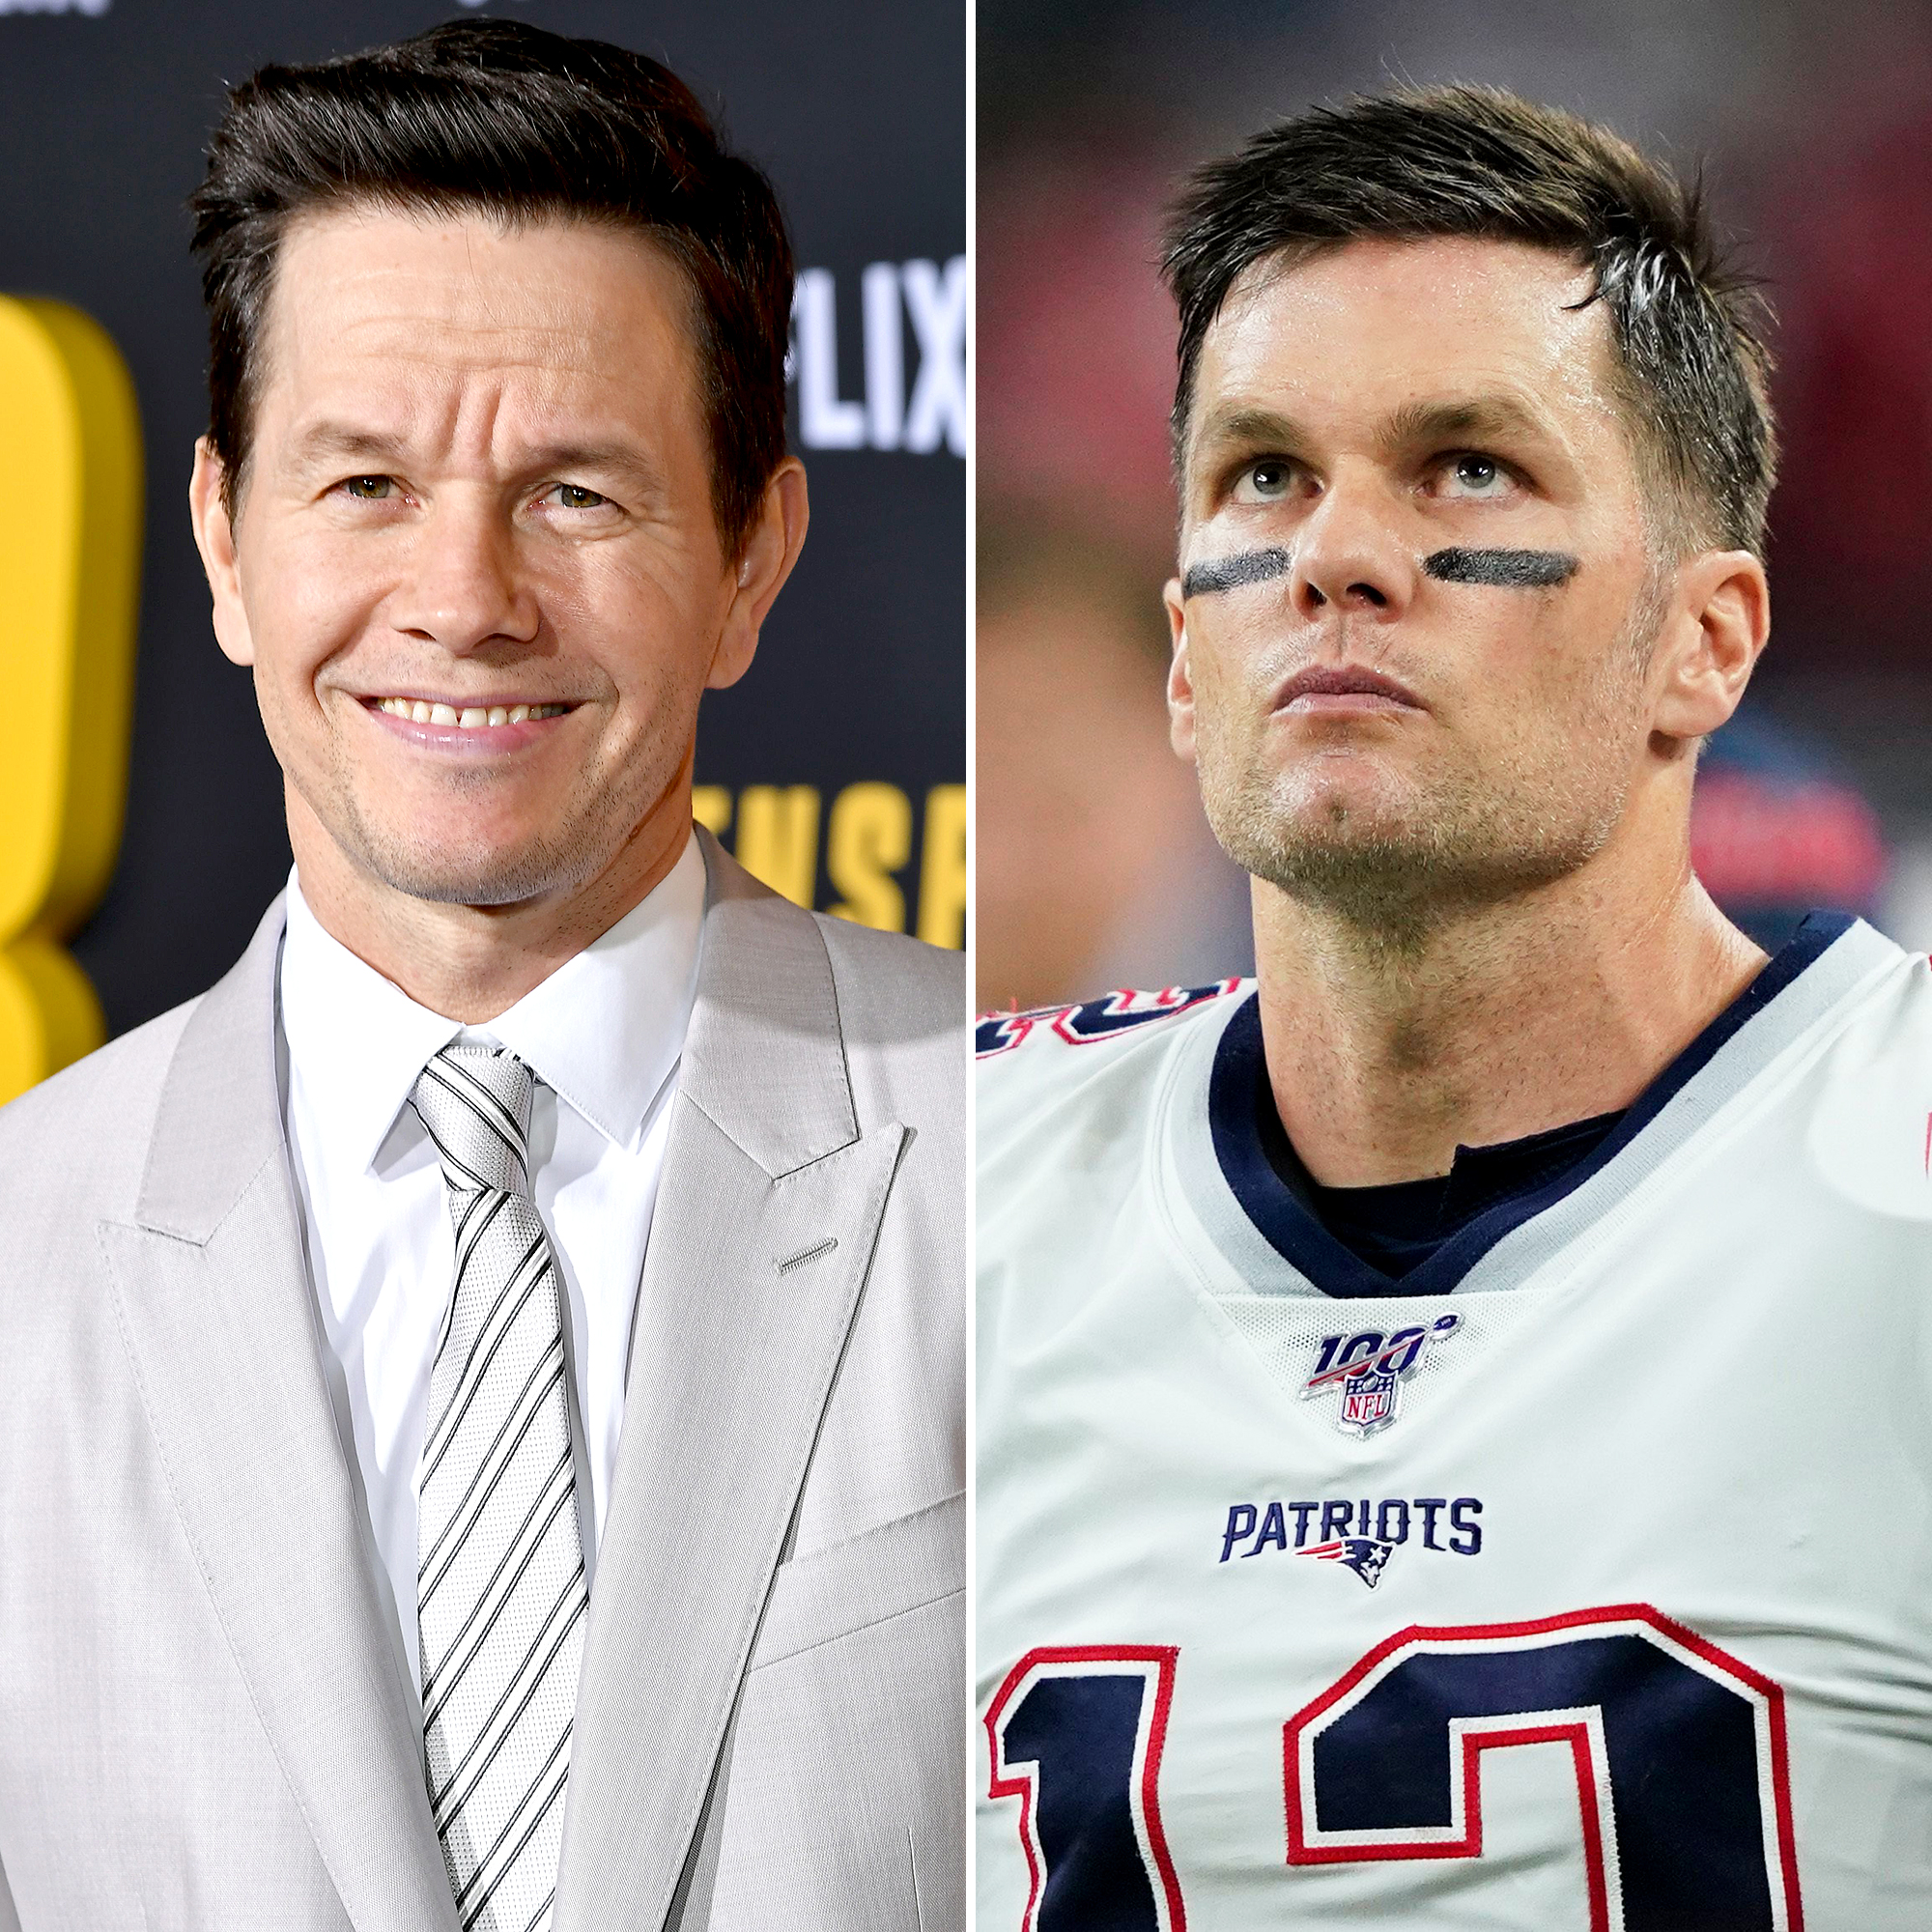 Mark-Wahlberg-Weighs-In-on-Tom-Brady's-Future-With-Patriots